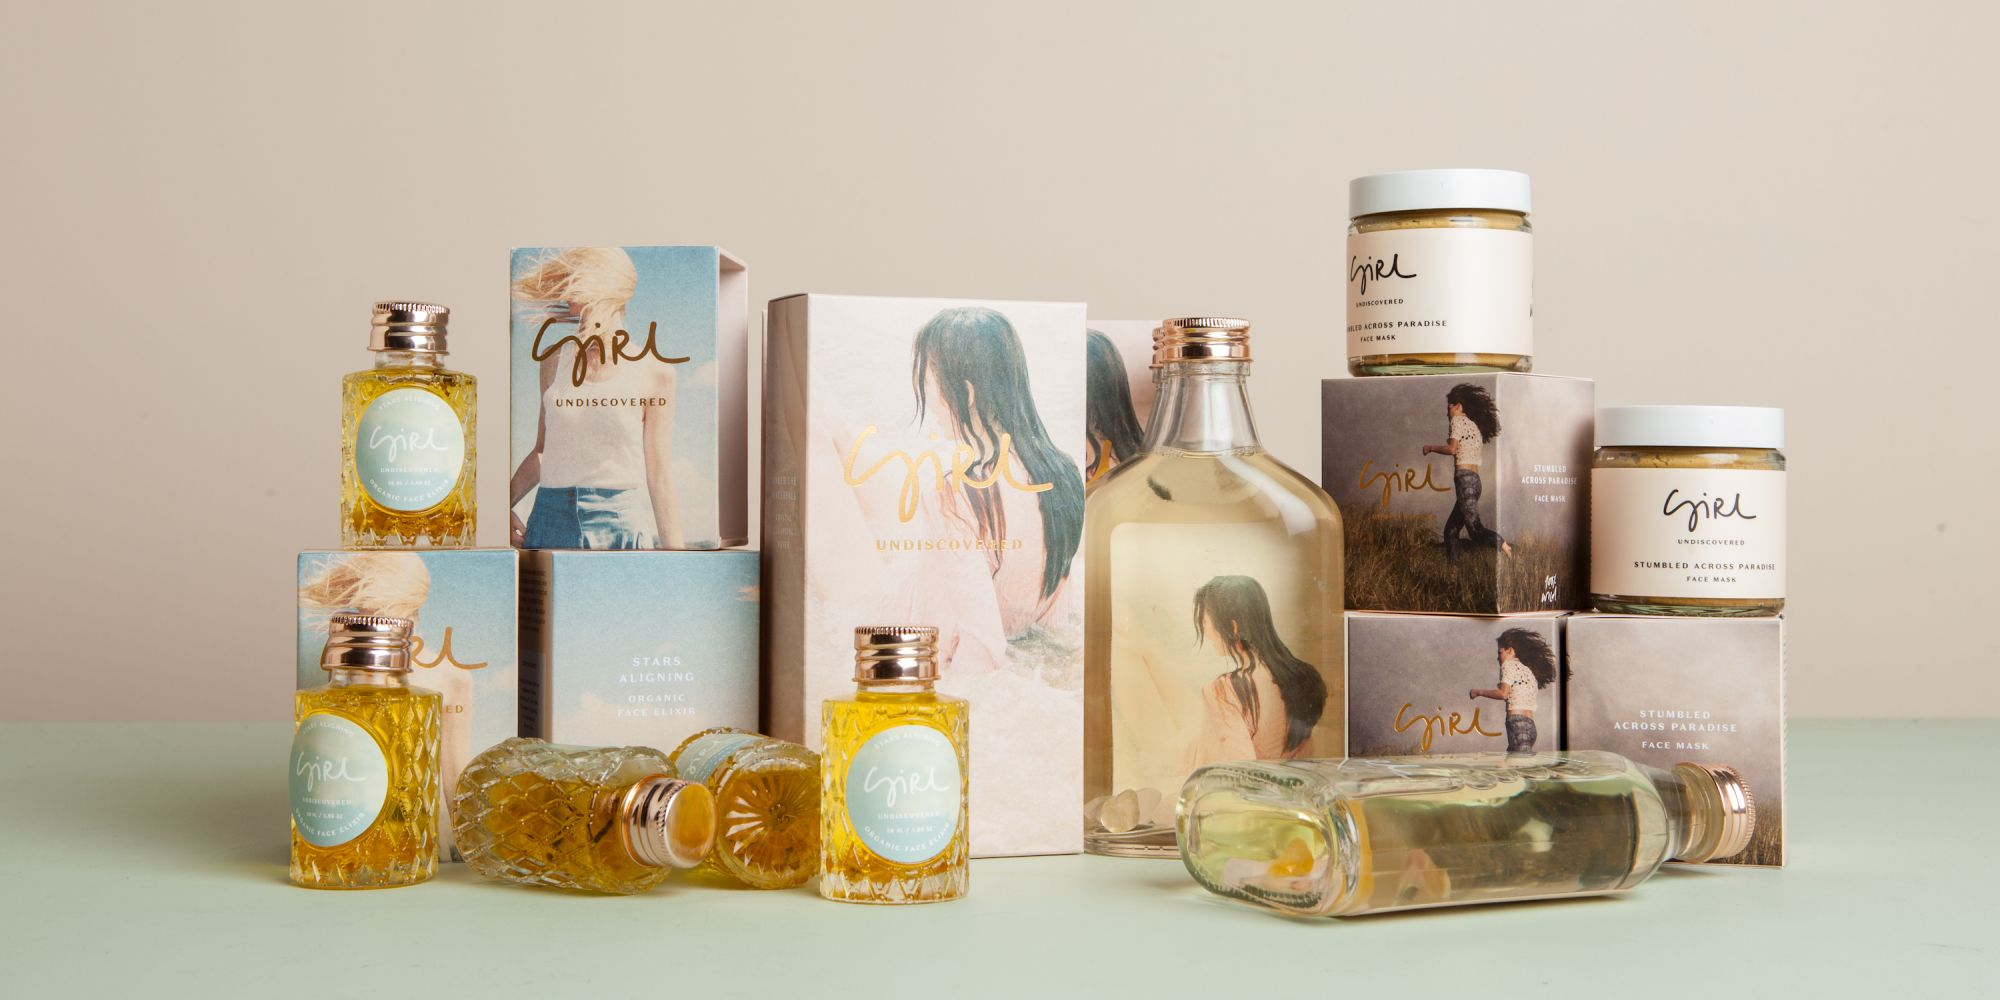 Now Discoverable: Skincare Brand Girl Undiscovered Brings Its Wild Ingredient Sourcing Stateside